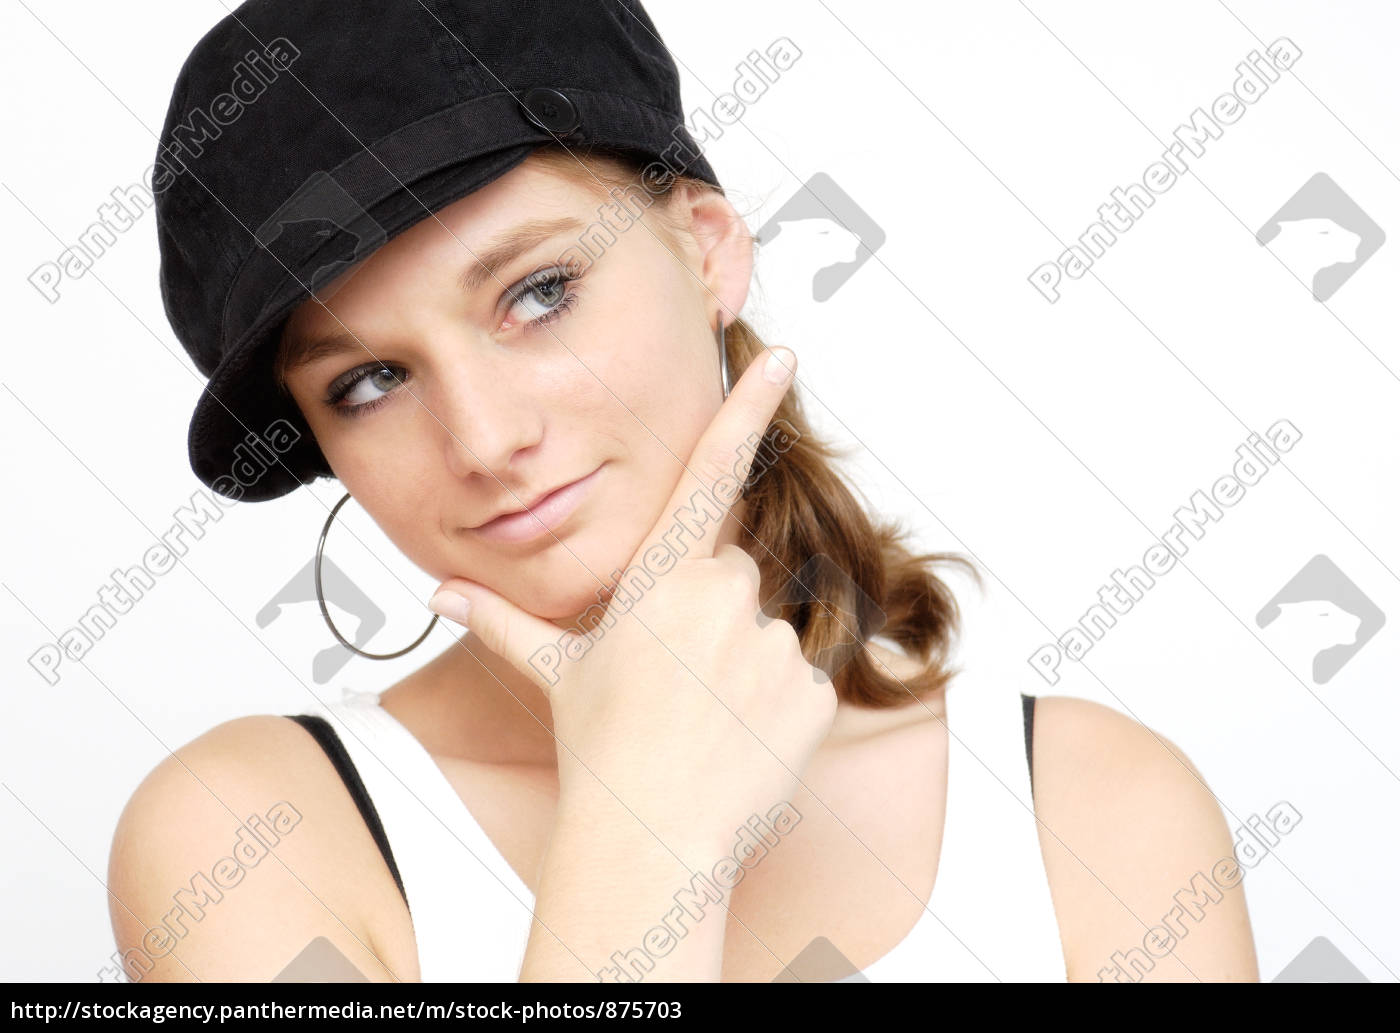 young, woman, with, black, cap - 875703